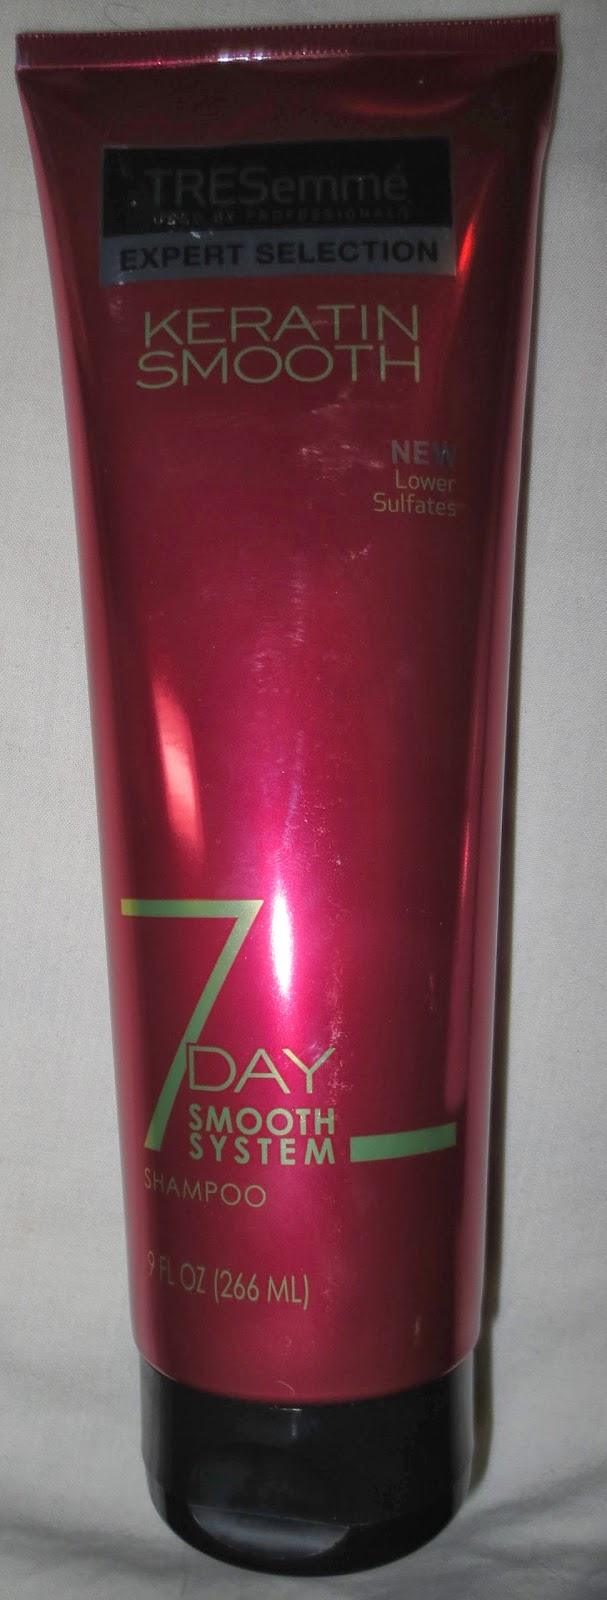 TRESemmé 7 Day Keratin Smooth System Shampoo